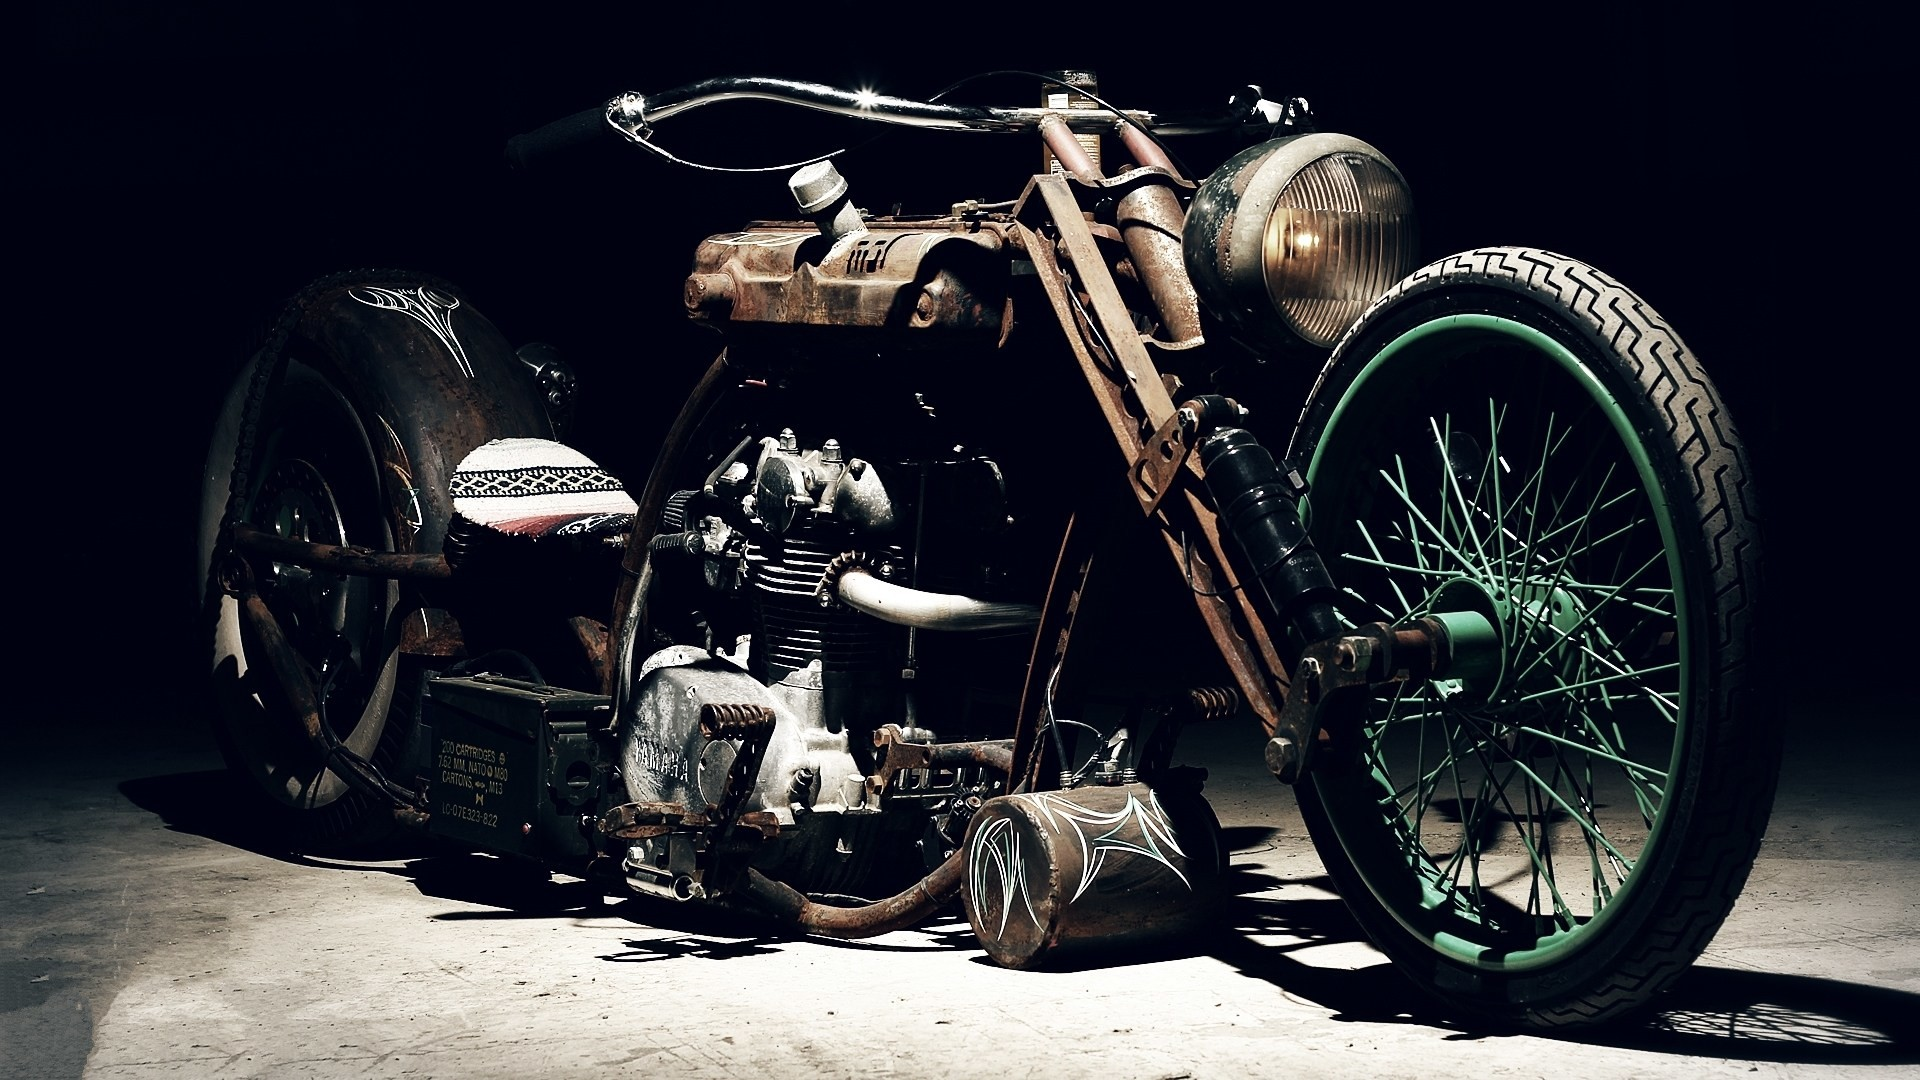 Res: 1920x1080, Bobber Motorcycle Wallpaper 4